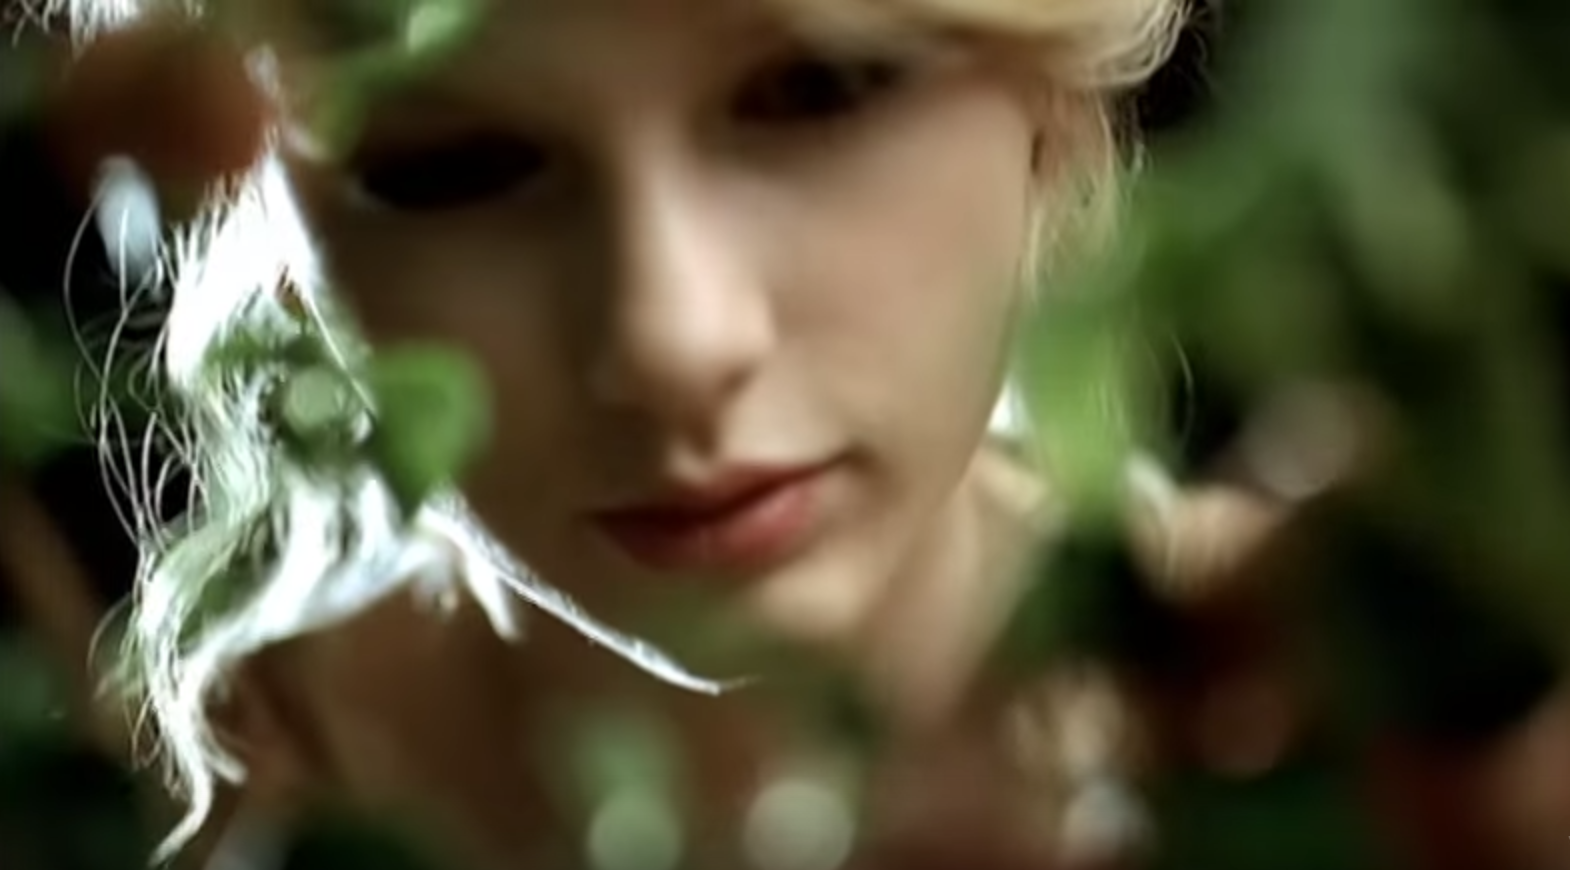 Can You Guess The Taylor Swift Song From The Music Video Still? Take this quiz and find out today!